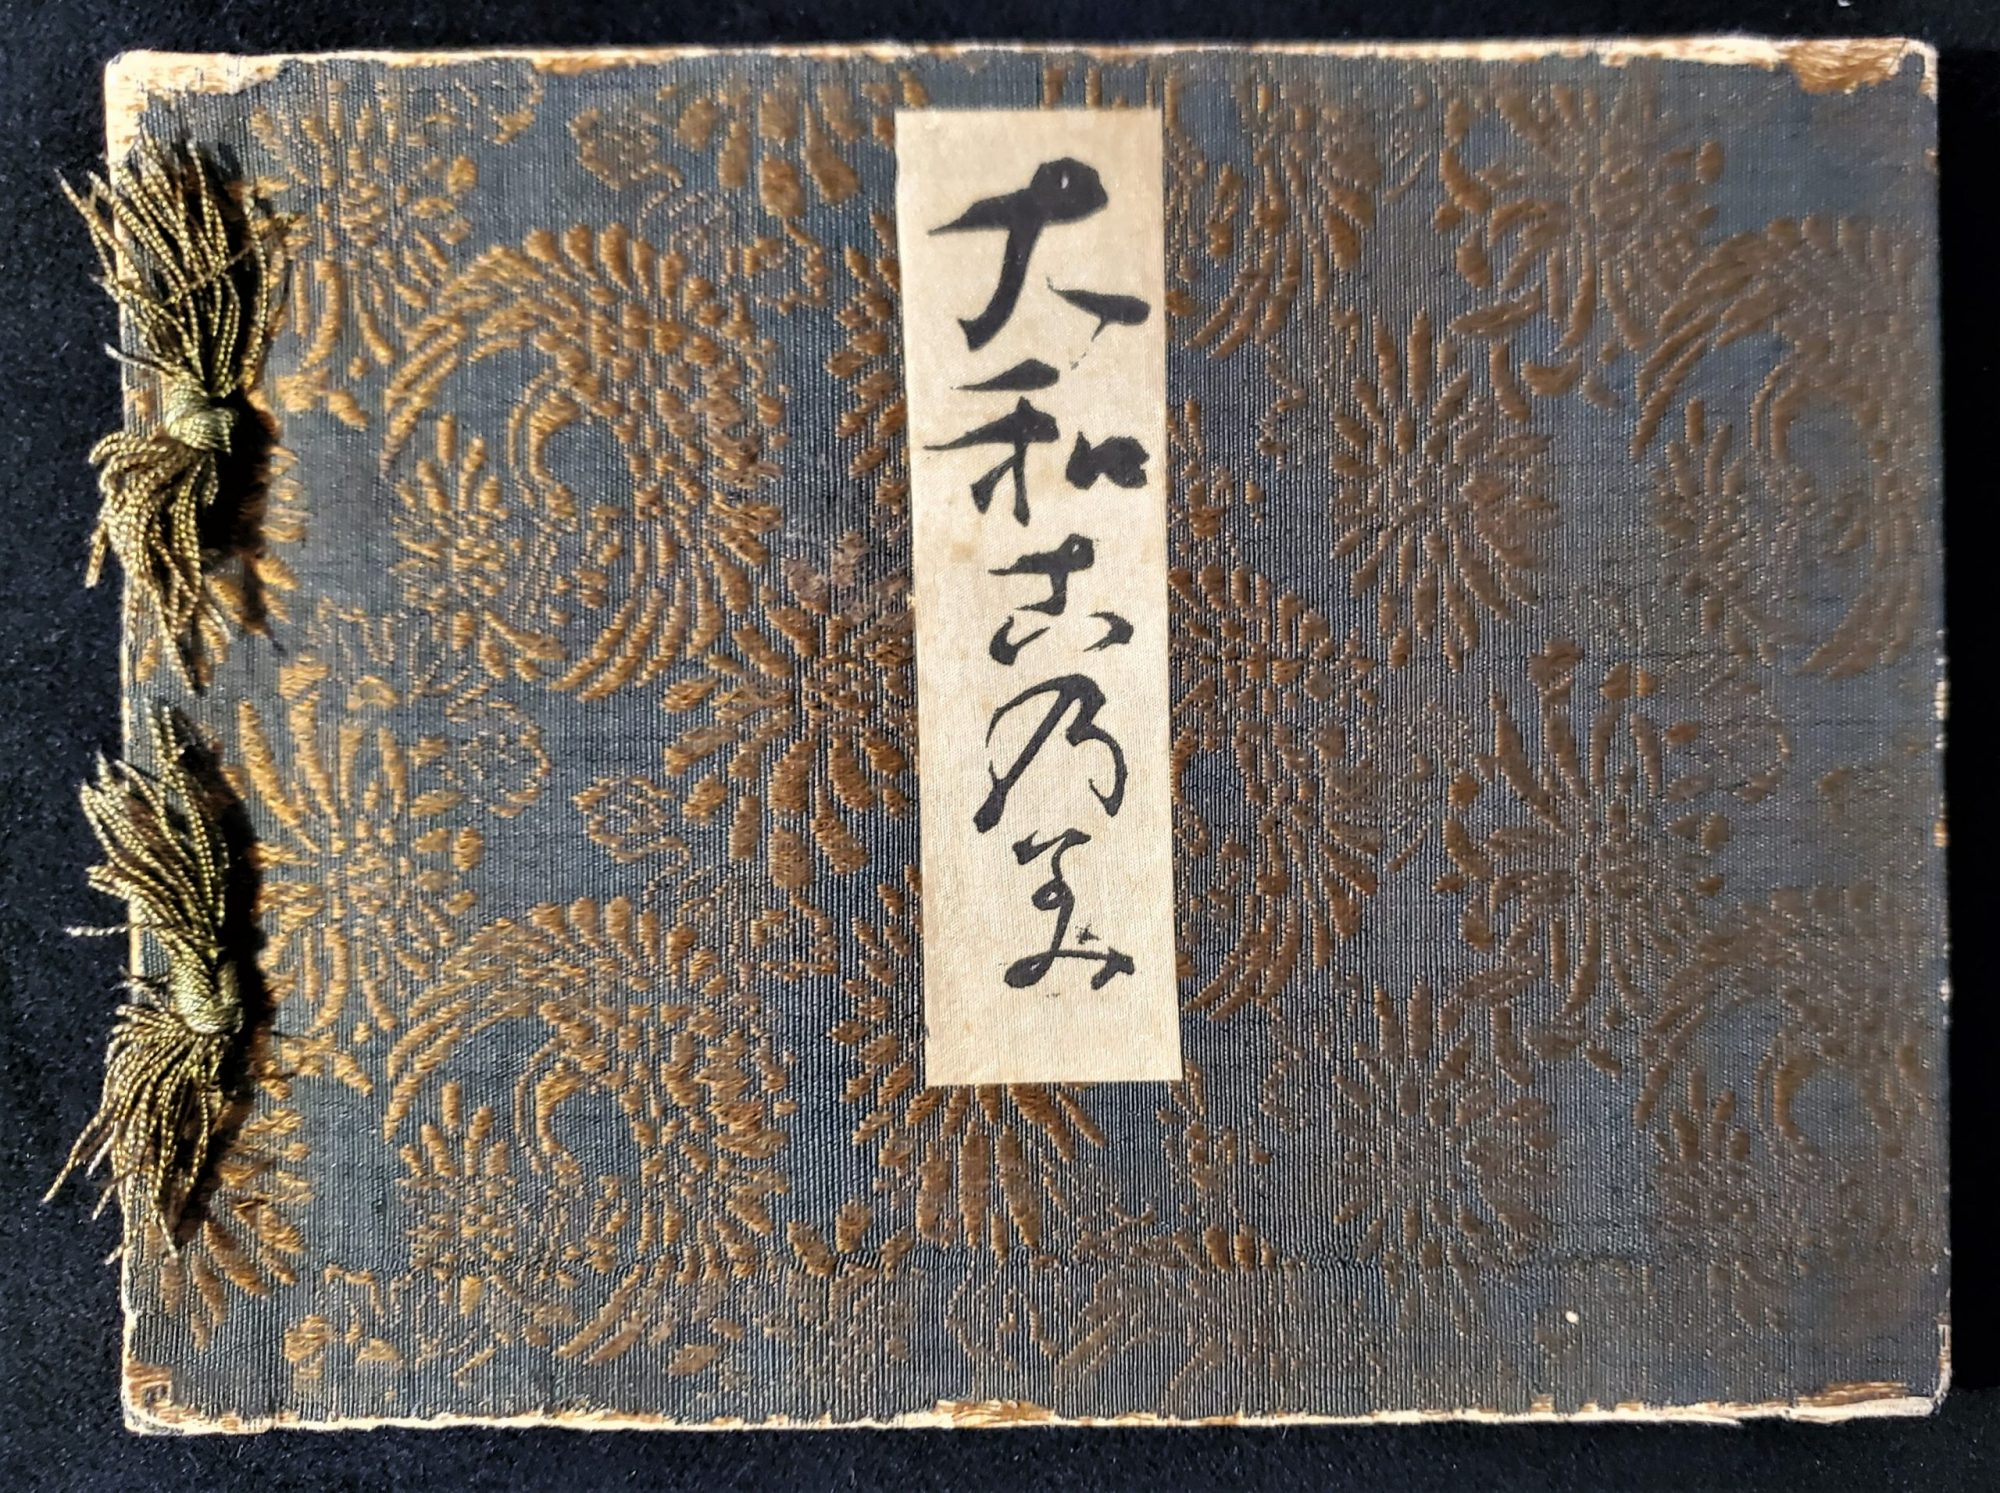 Cover of 1905 Yamanaka & Co. furnishings trade catalogue. Covered in silk brocade and bound with silk threads according to the ancient Japanese bookbinding technique of Yotsume Toji or stab-binding.